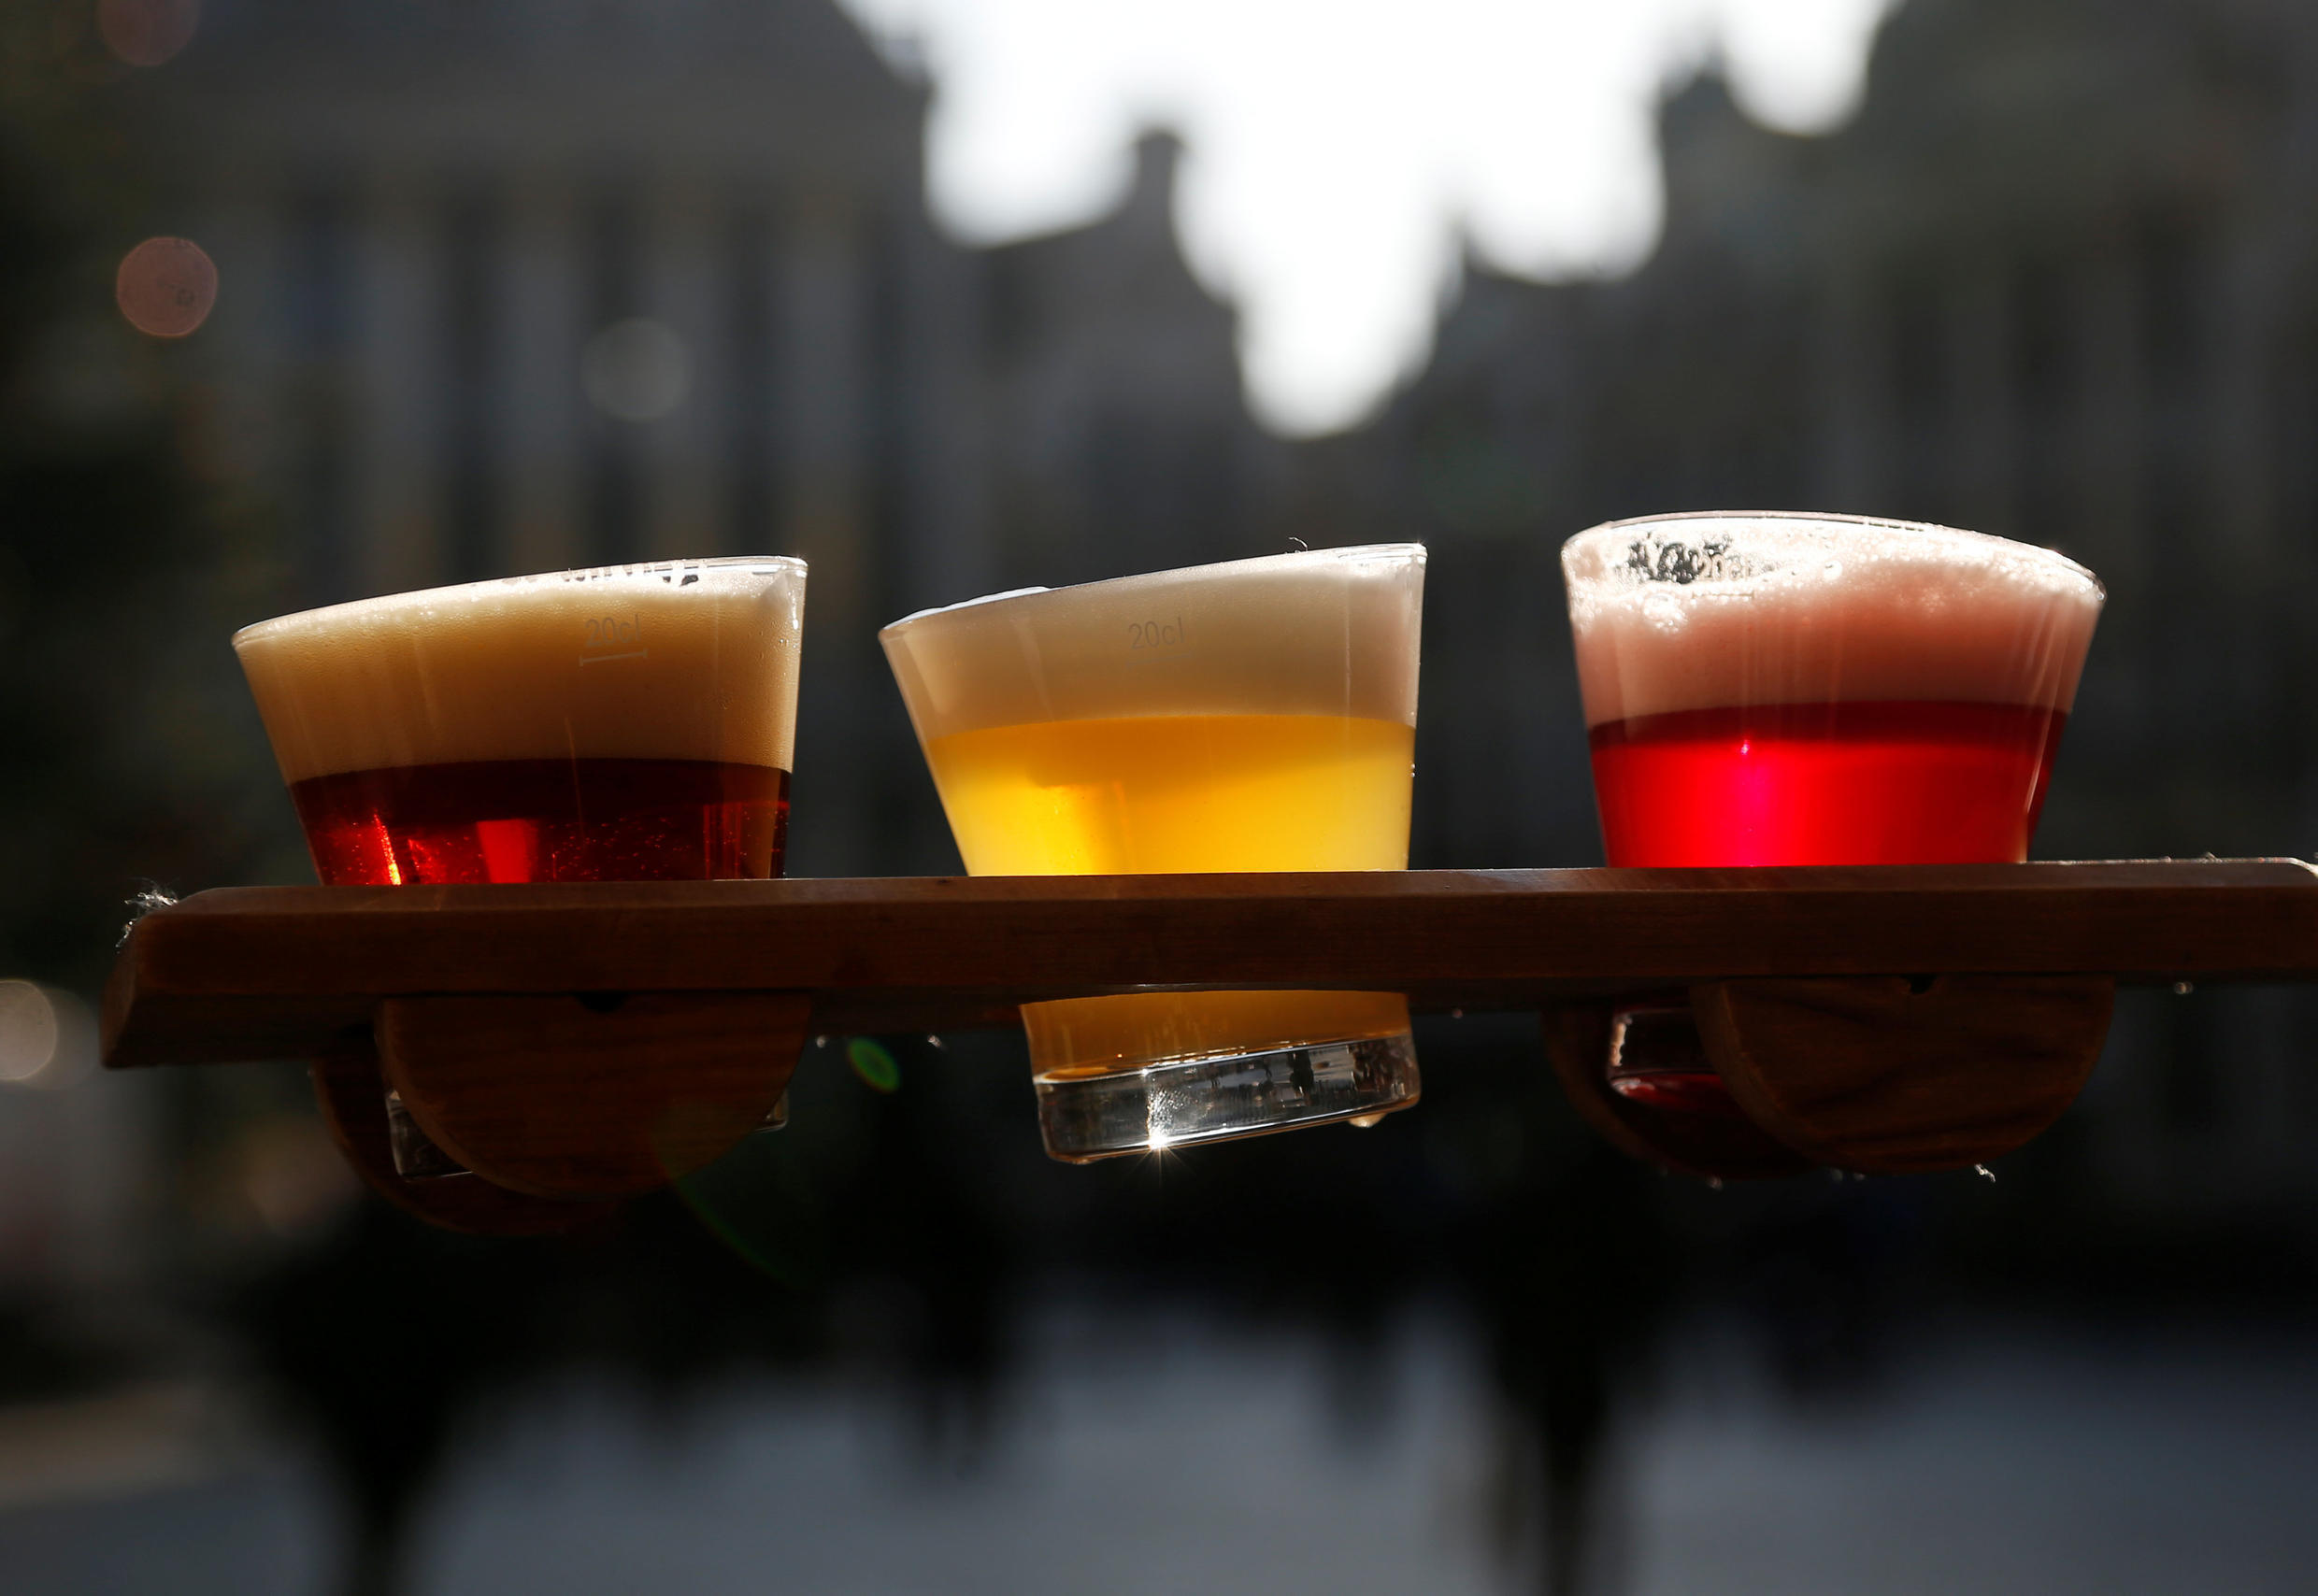 Fancy a beer? Sure, but what kind? 300 different styles of craft beer to choose from, all of them produced by French enthusiasts who have decided to reject the standardised product offered by the big multinational brewers.